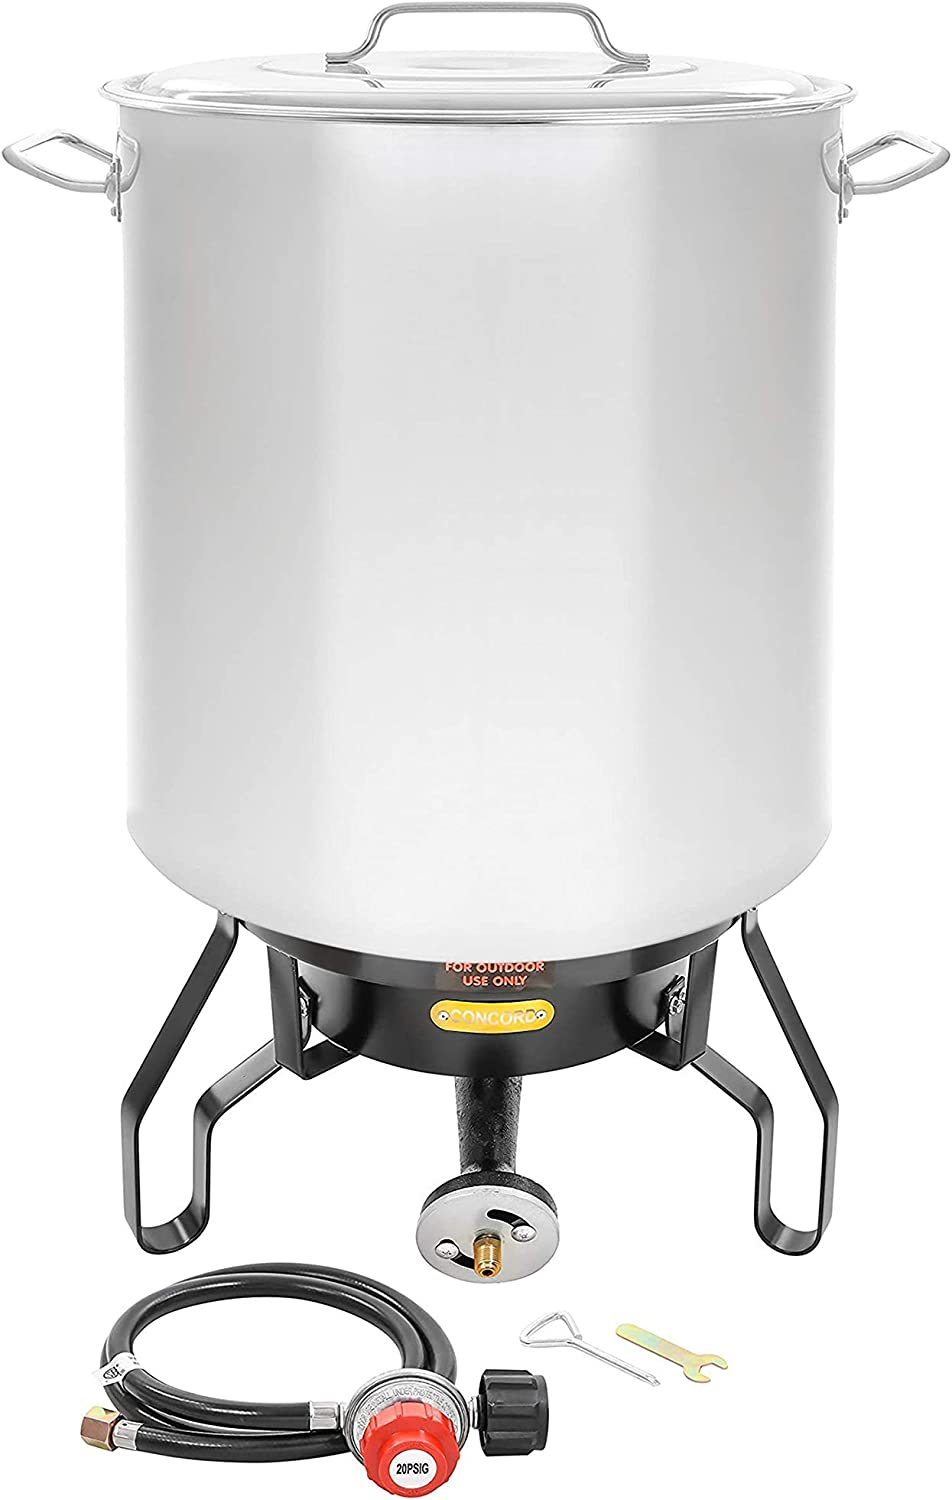 Concord Home Brew Stainless Steel Kettle with Single Burner Stand Set (180 Quart)